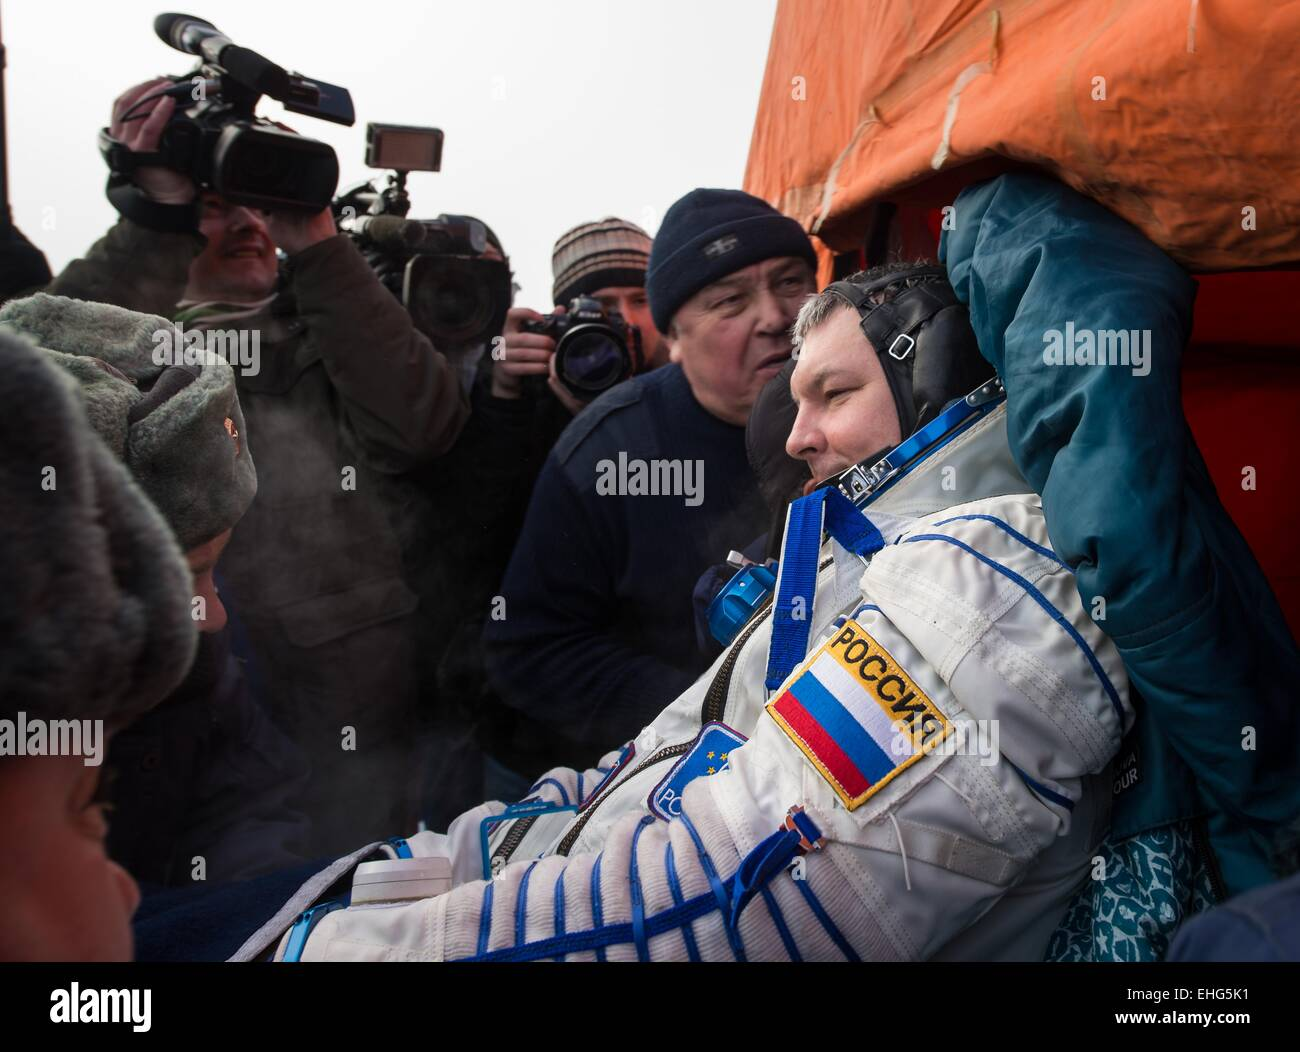 ISS Expedition 42 Cosmonaut Alexander Samokutyaev is carried to the recover vehicle outside the Soyuz TMA-14M  capsule - Stock Image